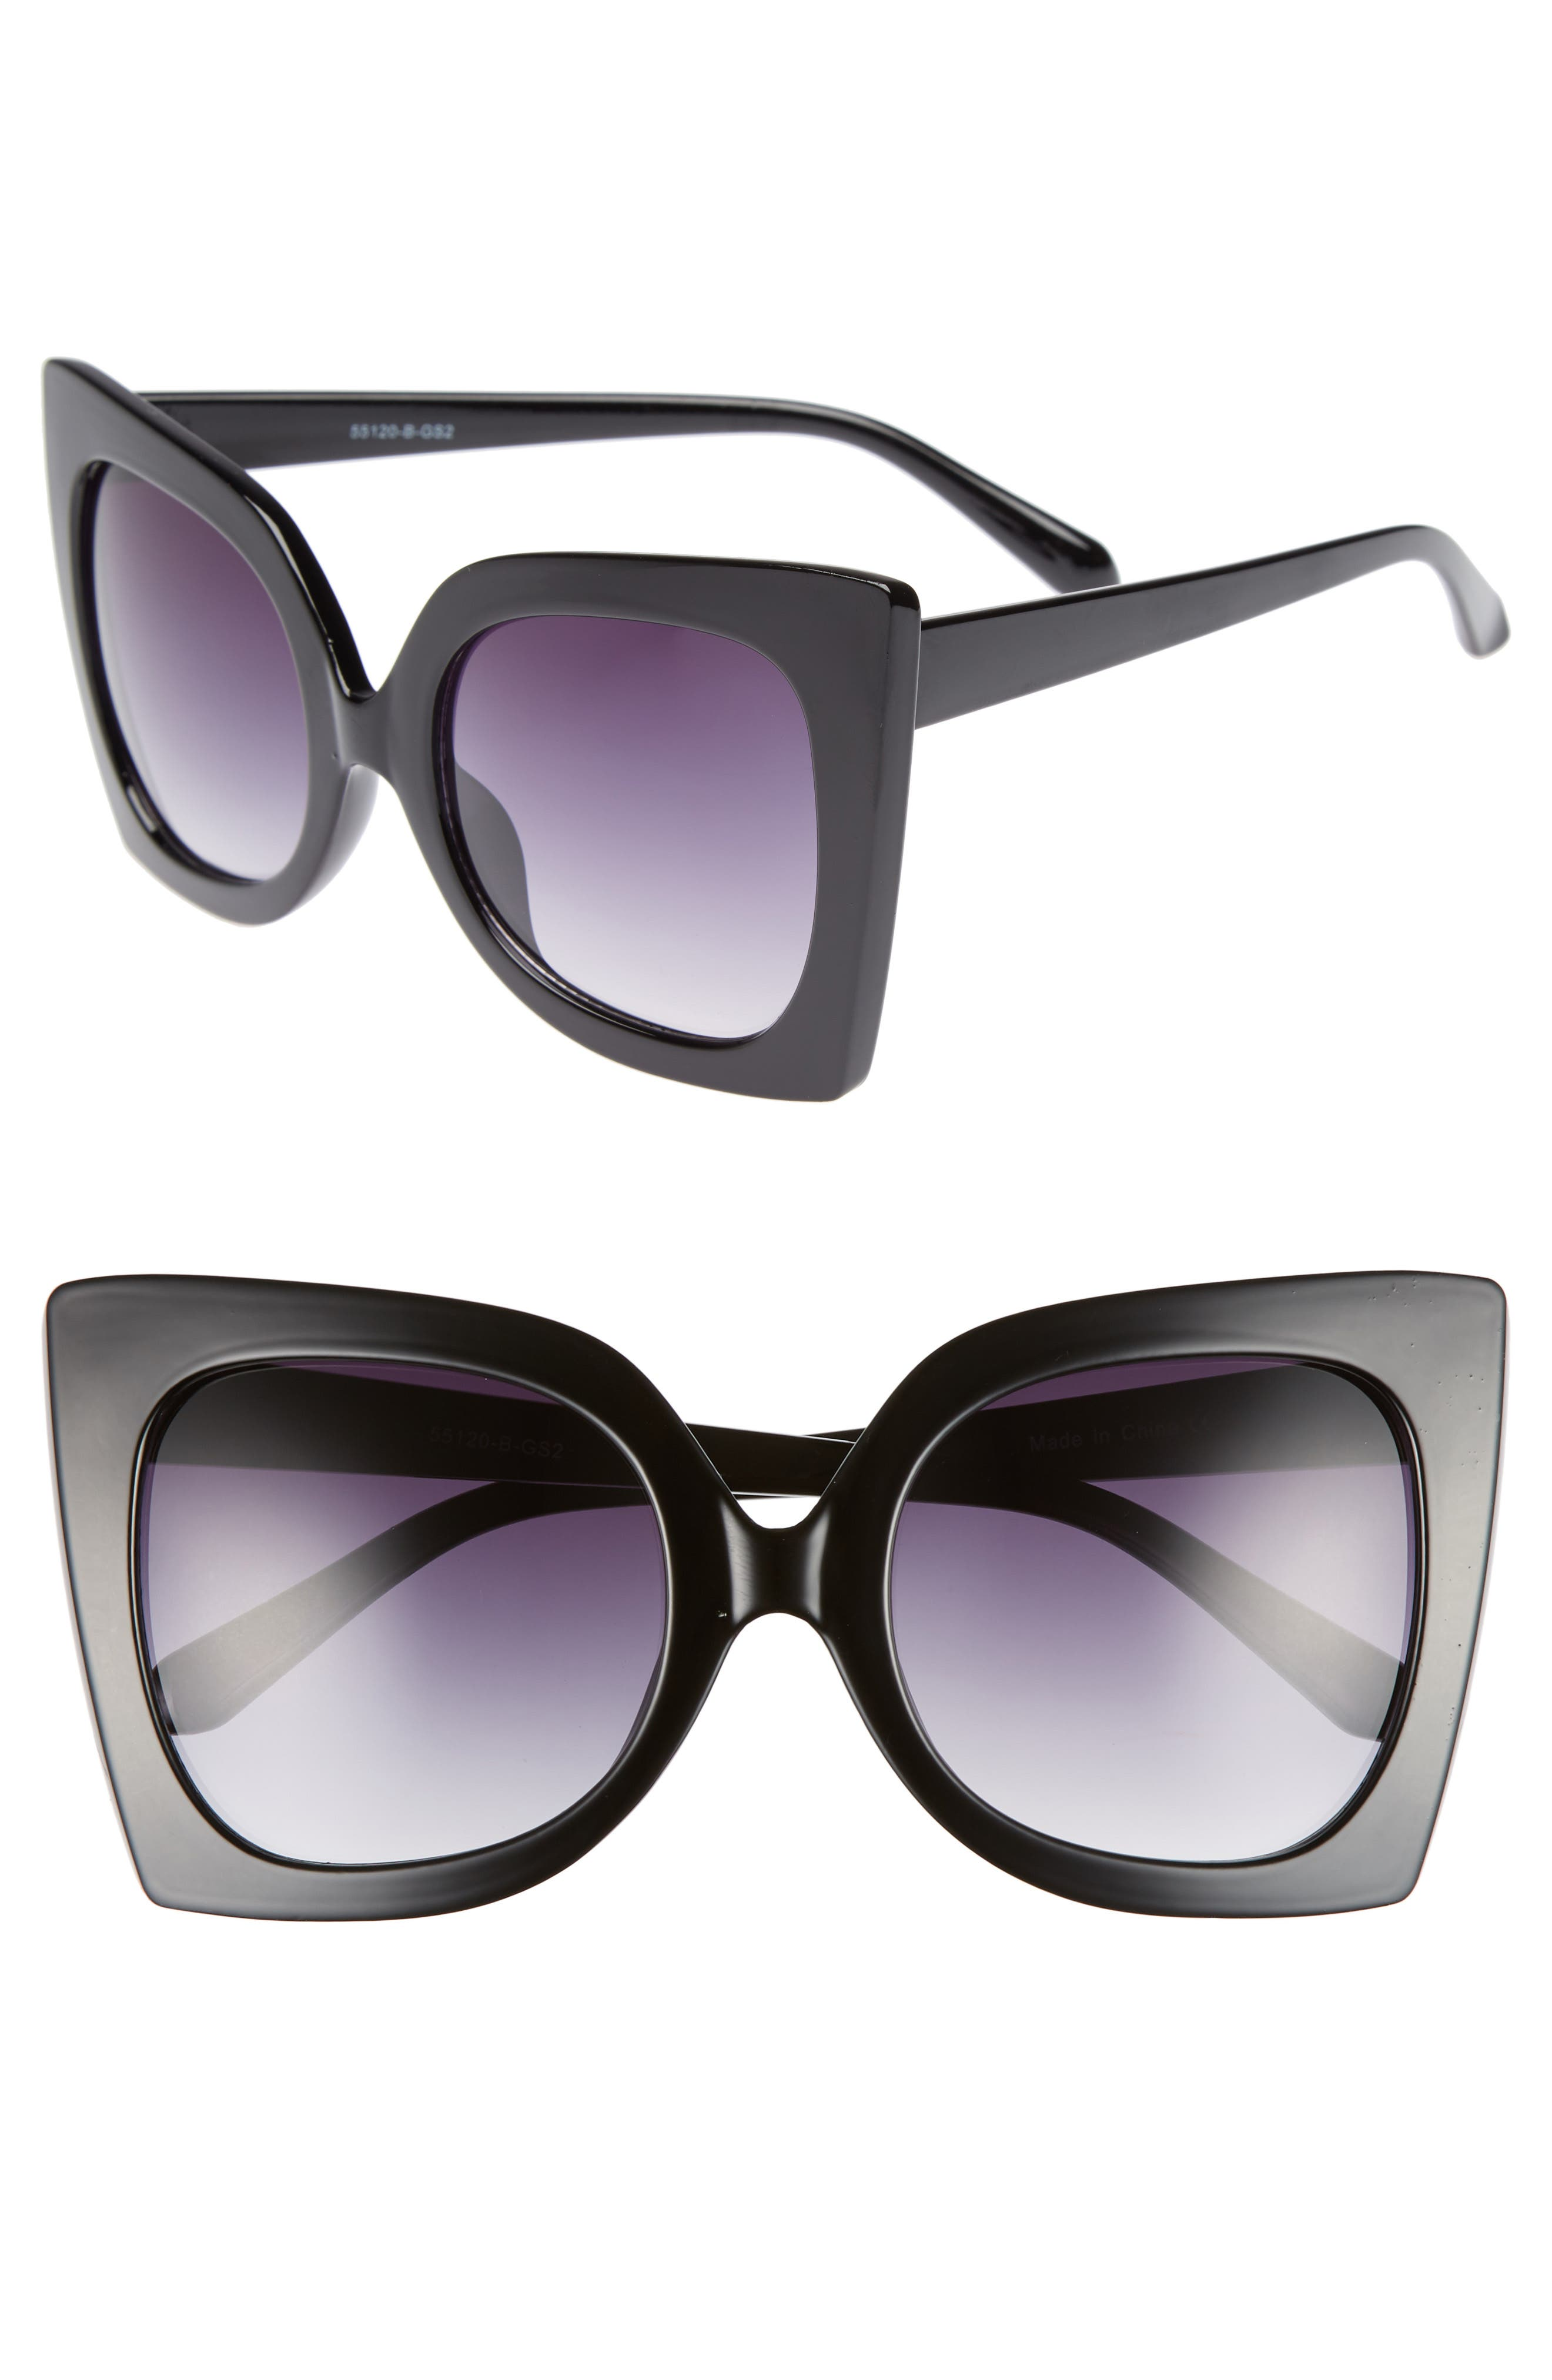 56mm Exaggerated Square Sunglasses,                             Main thumbnail 1, color,                             001